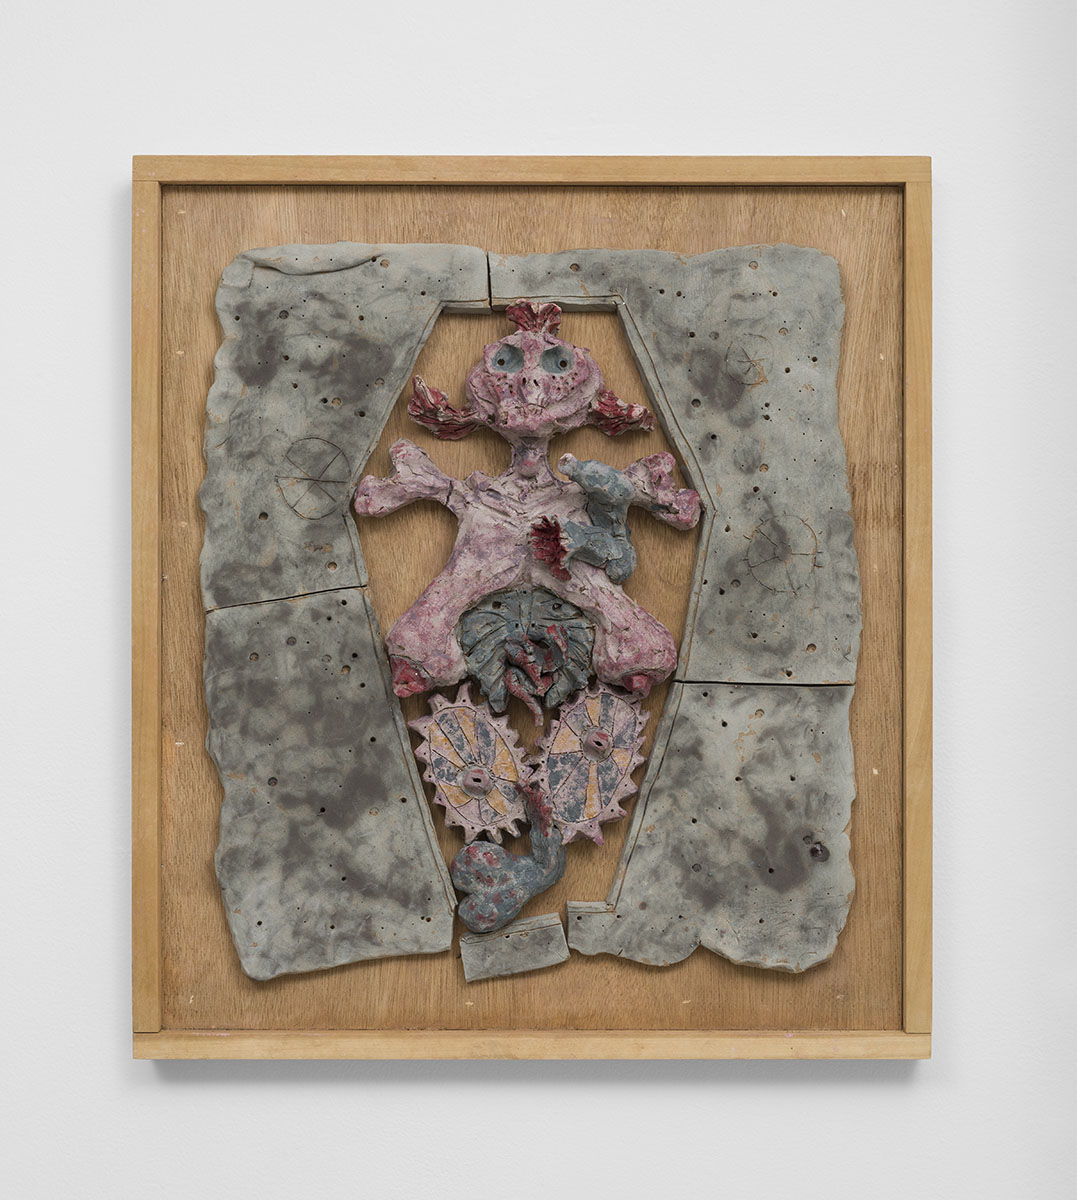 Richard Hawkins - The Eunuchthizing Priestess, 2015, glazed ceramic in artist's frame, 25 ¾ x 22 ¾ x 4 inches